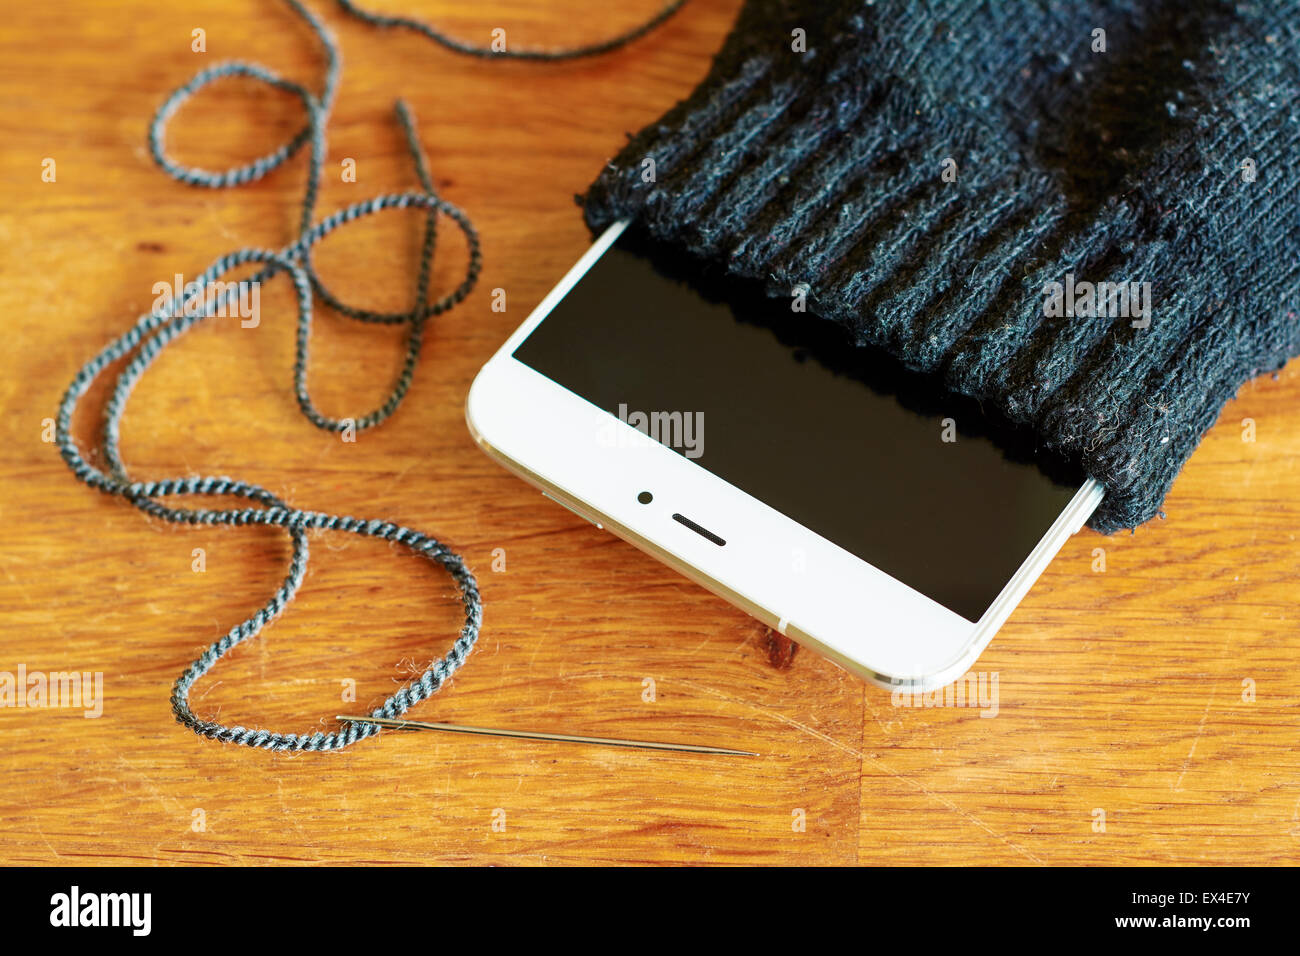 Old sock being reused as smartphone case. - Stock Image